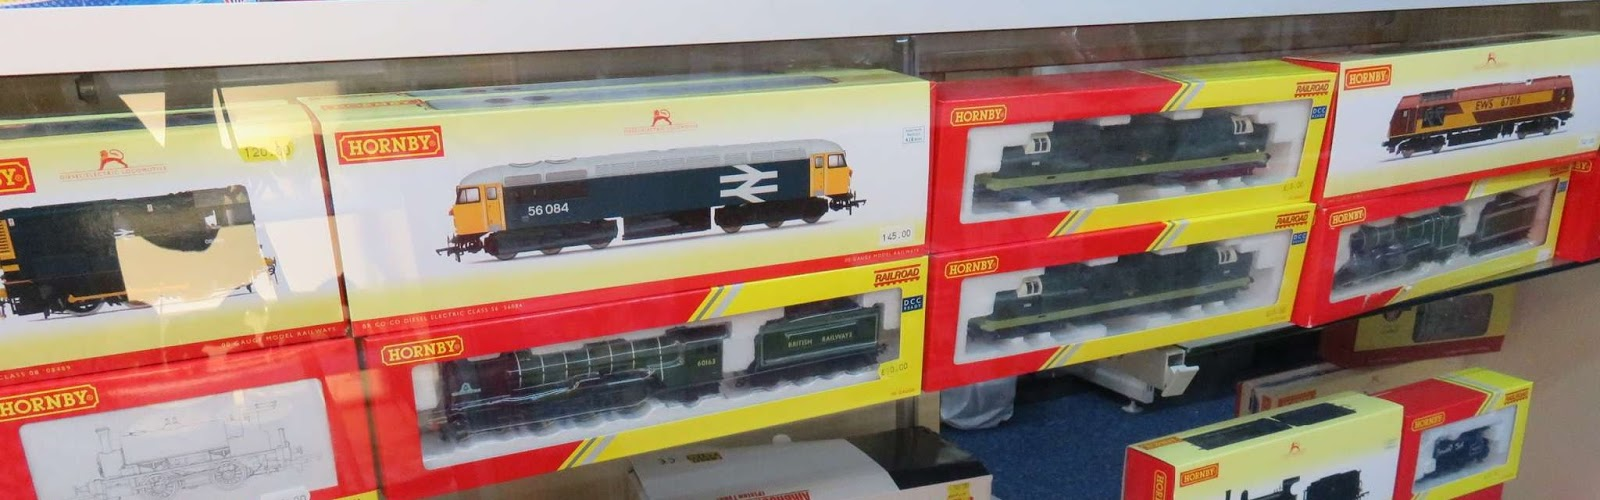 Model train selection in Banbury